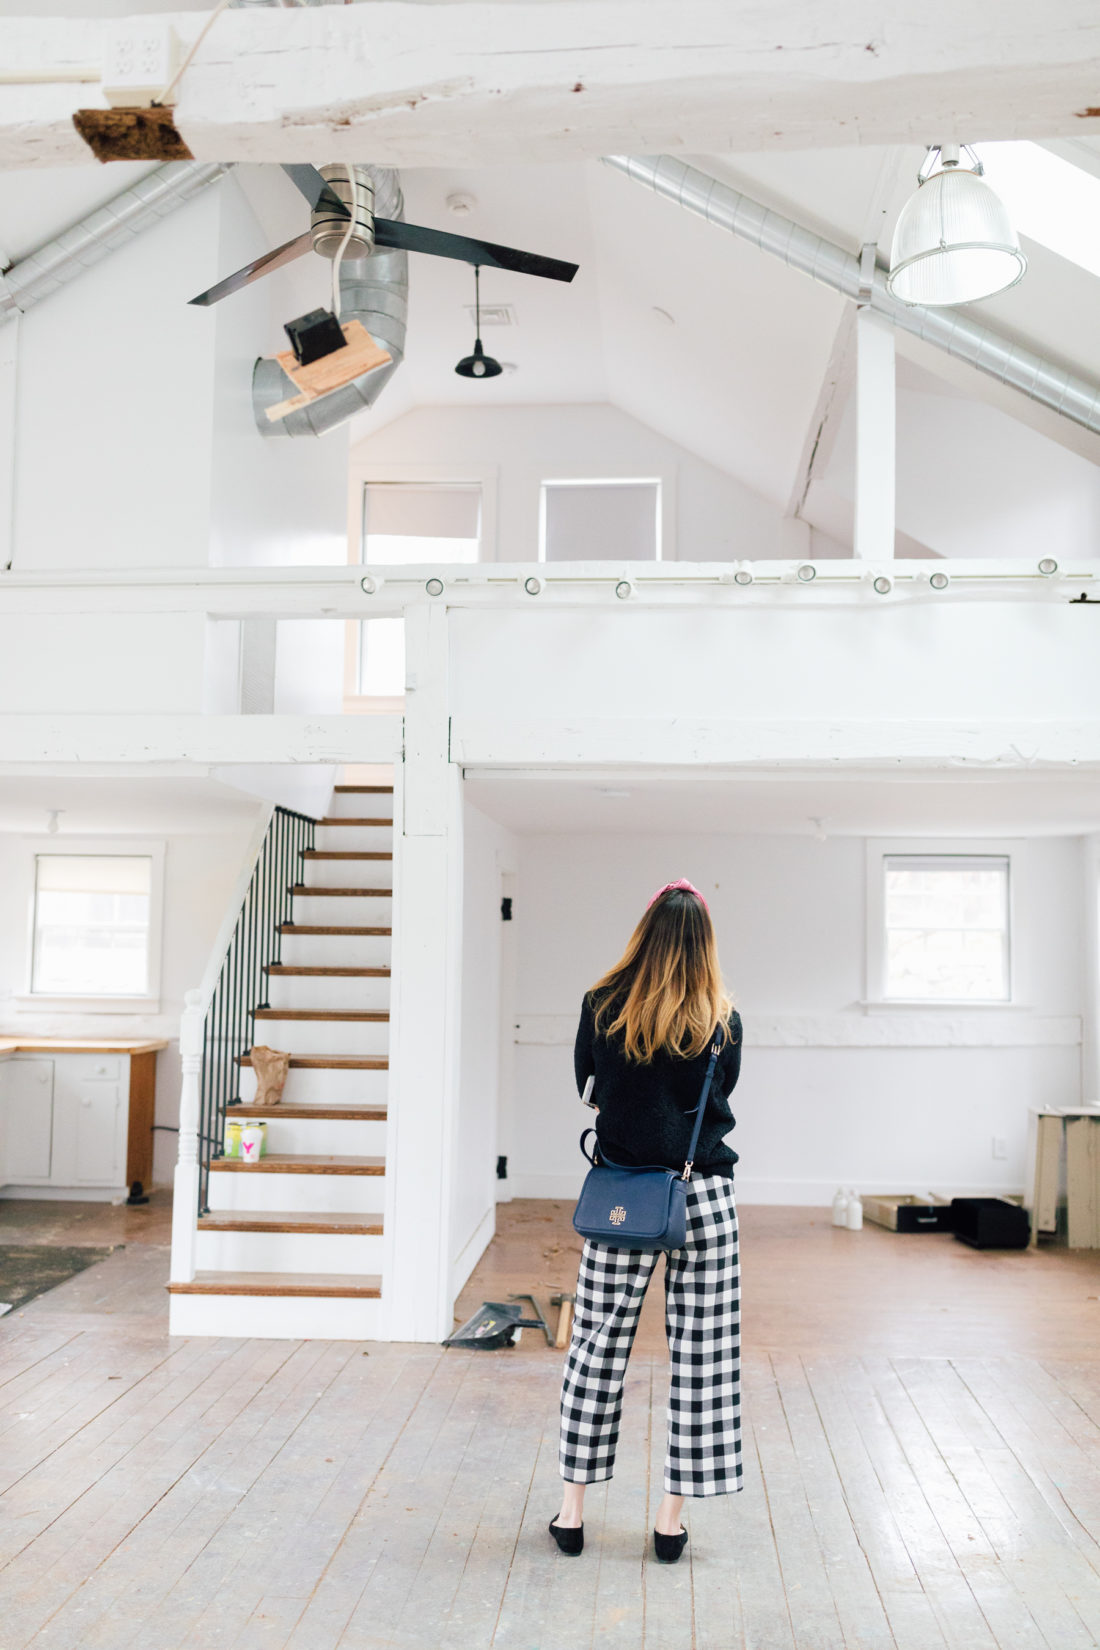 Eva Amurri Martino stands in the preliminary renovation of her new studio space in Westport Connecticut